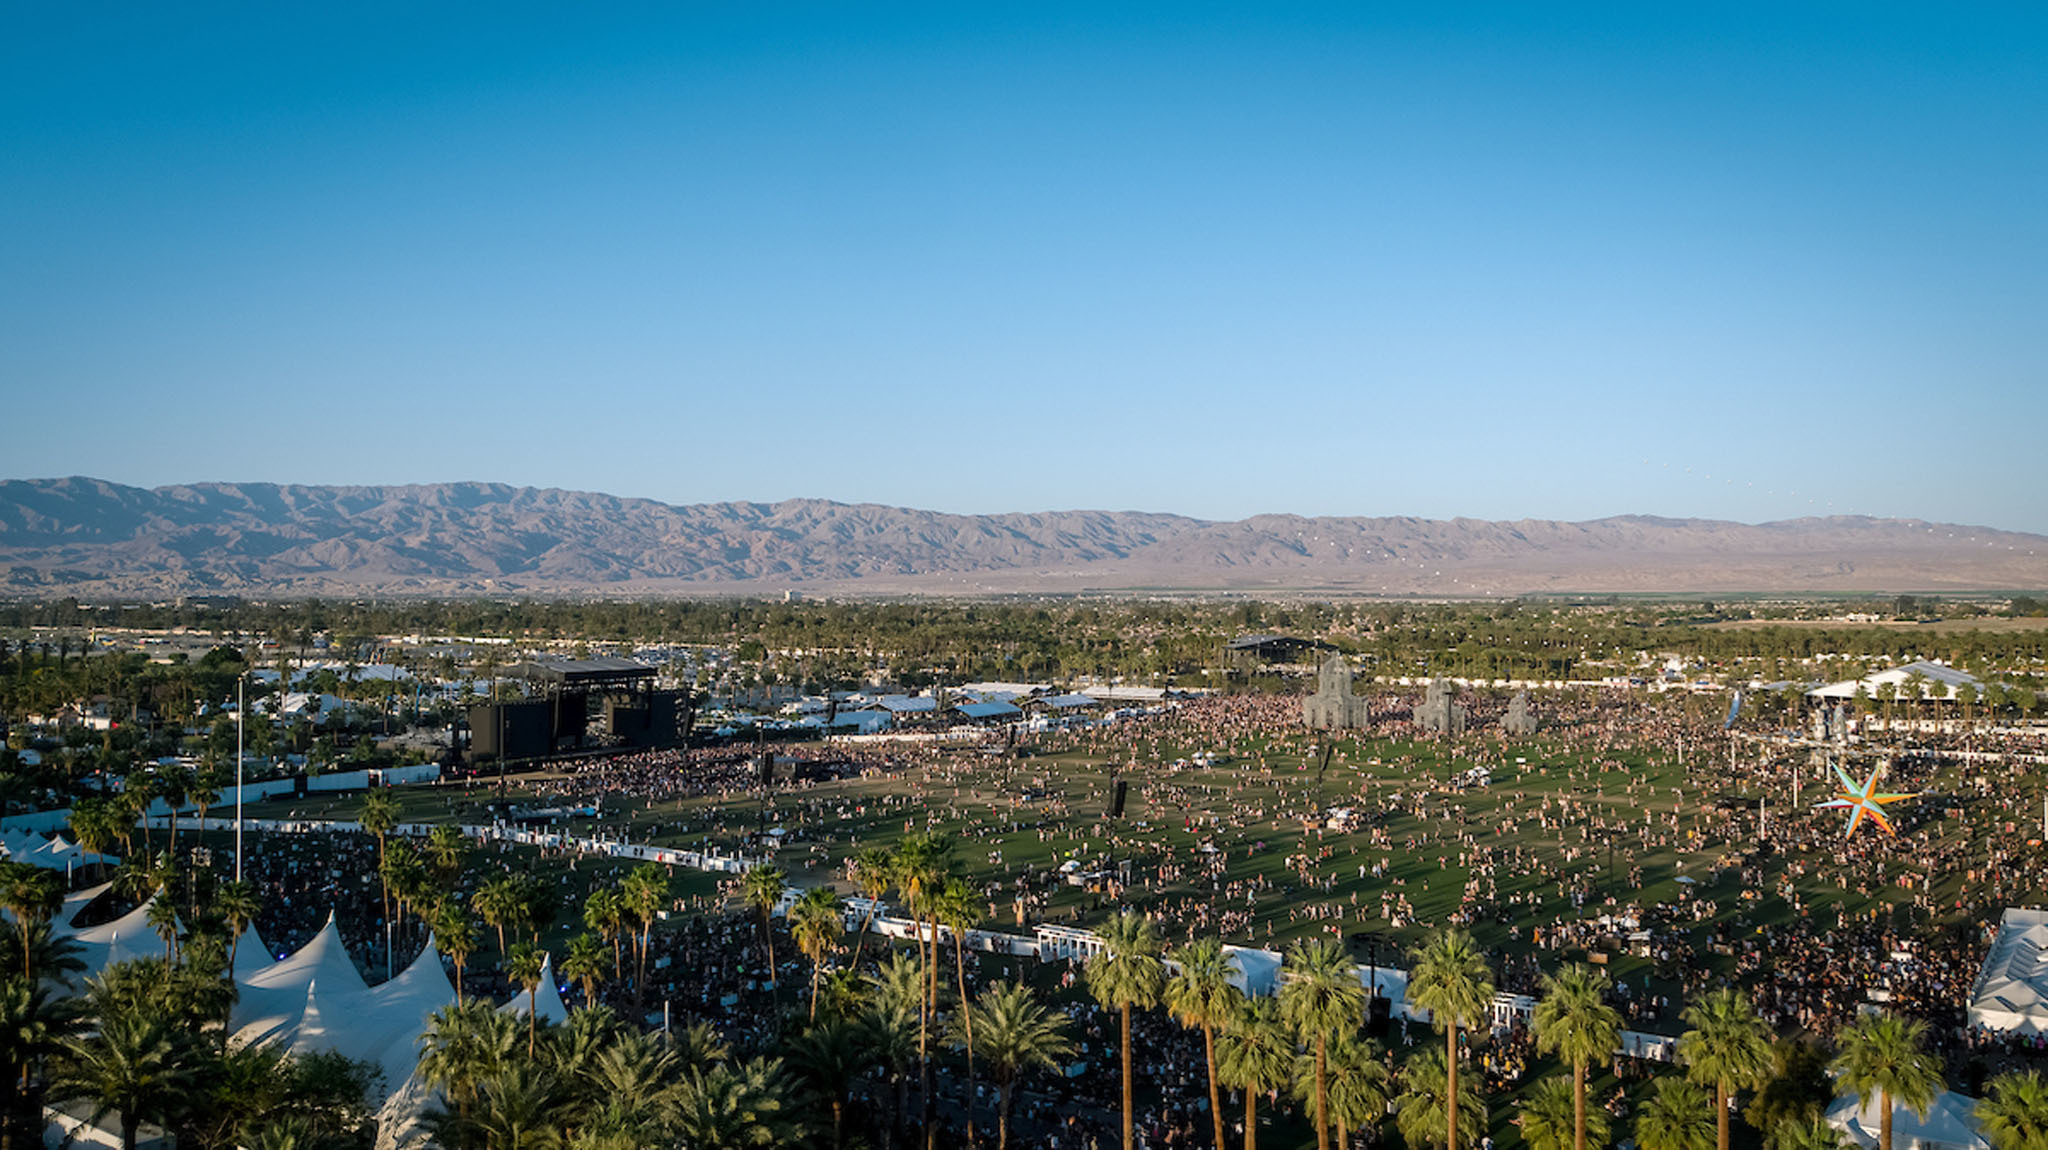 High winds have pushed back Coachella's campgrounds opening